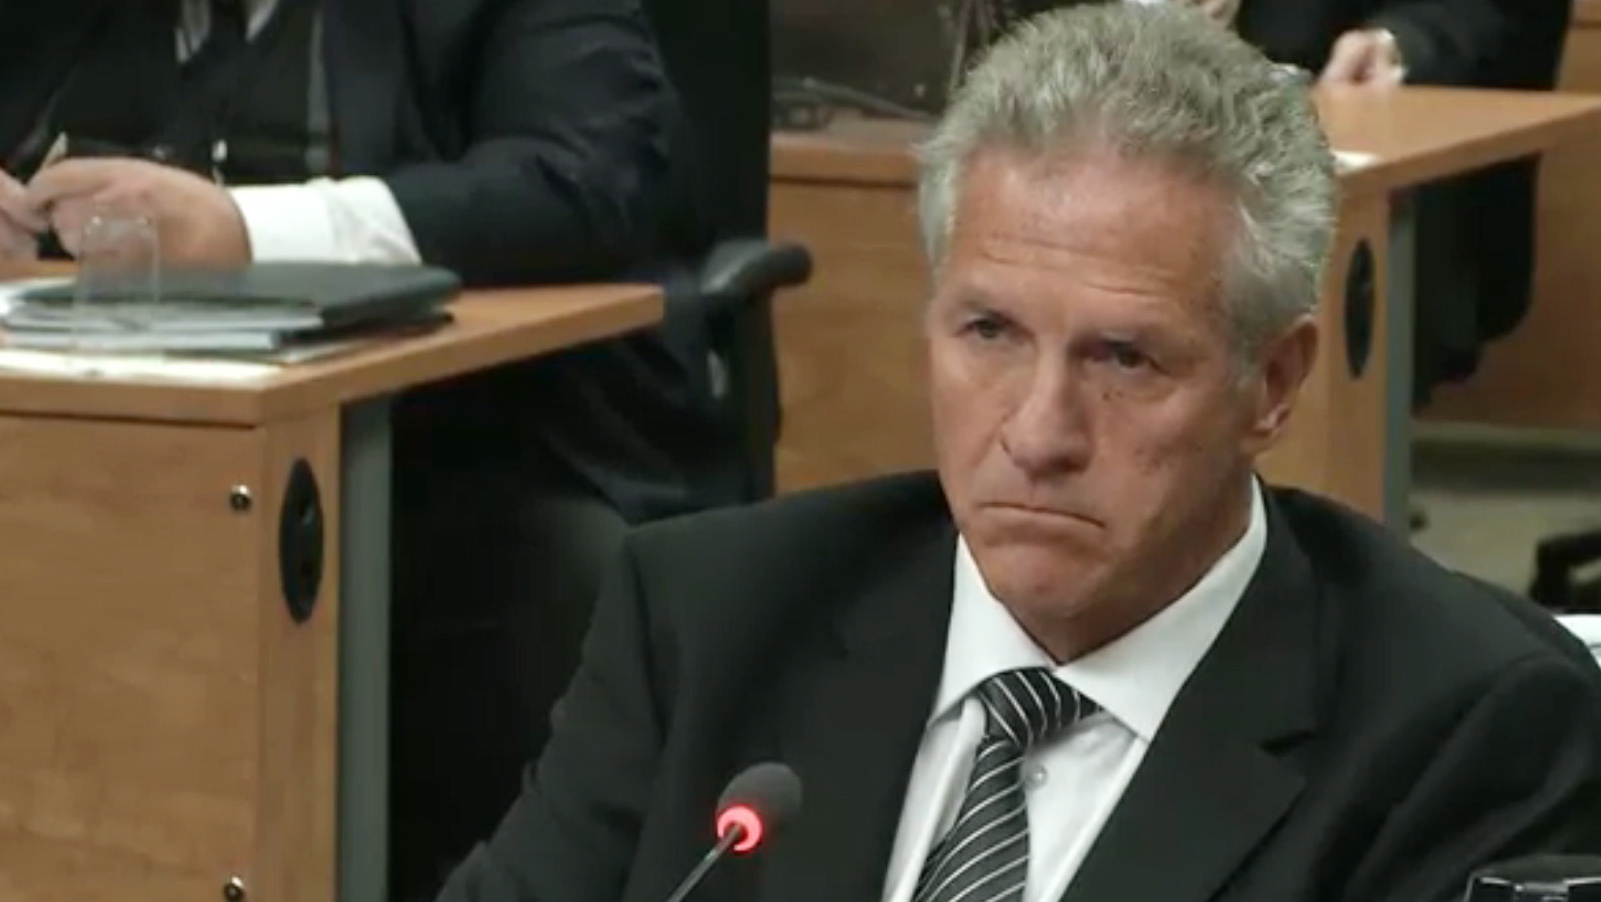 Construction magnate Tony Accurso is seen on an image taken off a television monitor at the Charbonneau inquiry looking into corruption in the Quebec construction industry Wednesday, September 3, 2014 in Montreal. THE CANADIAN PRESS/Paul Chiasson